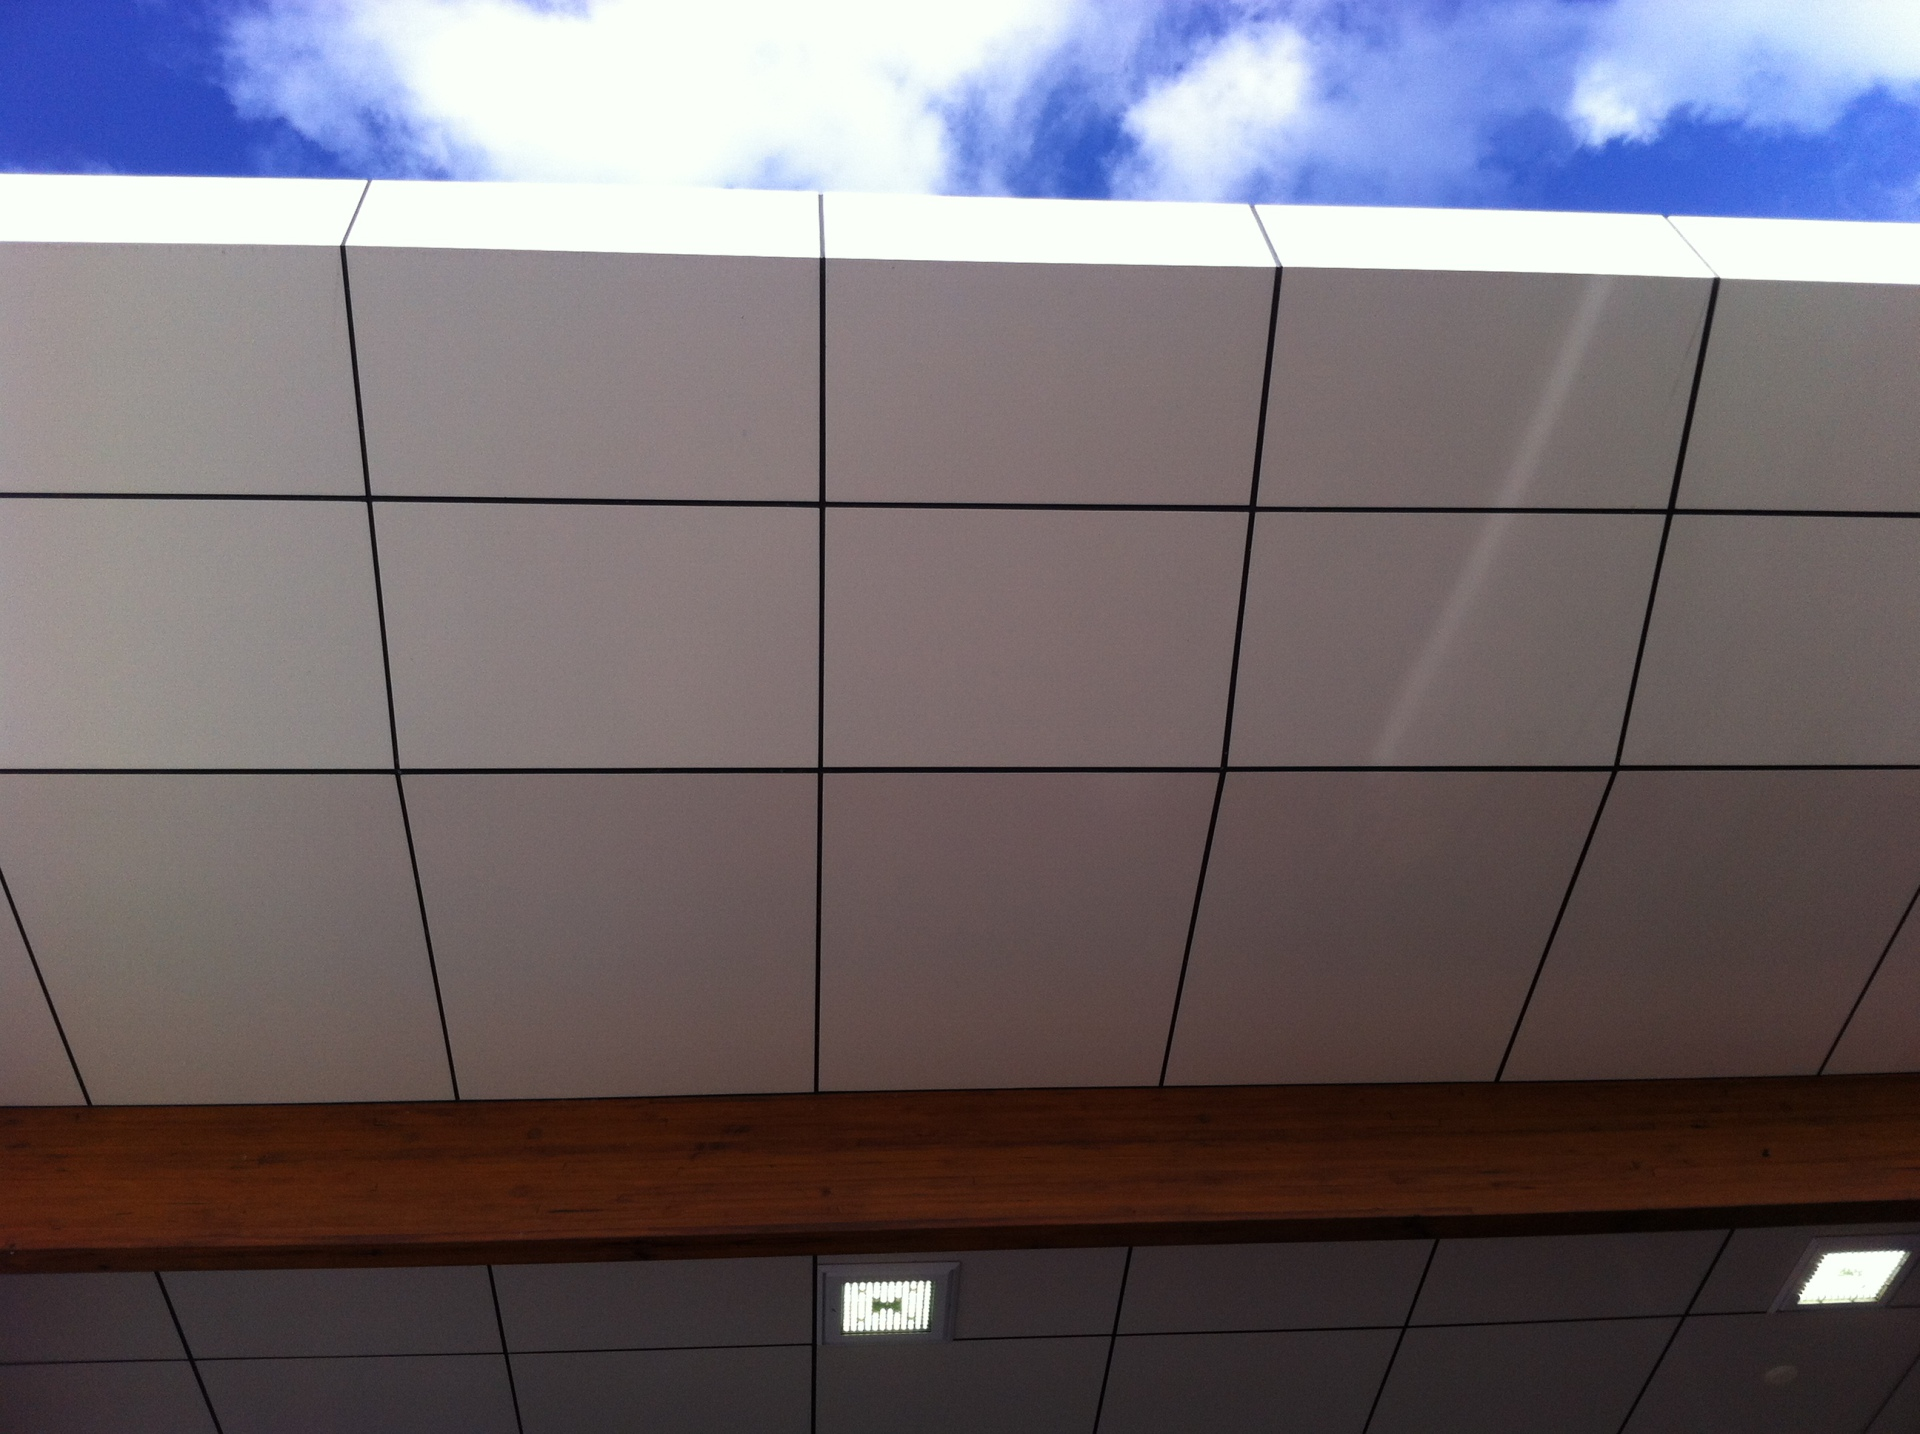 cladding brisbane, aluminium composite panels